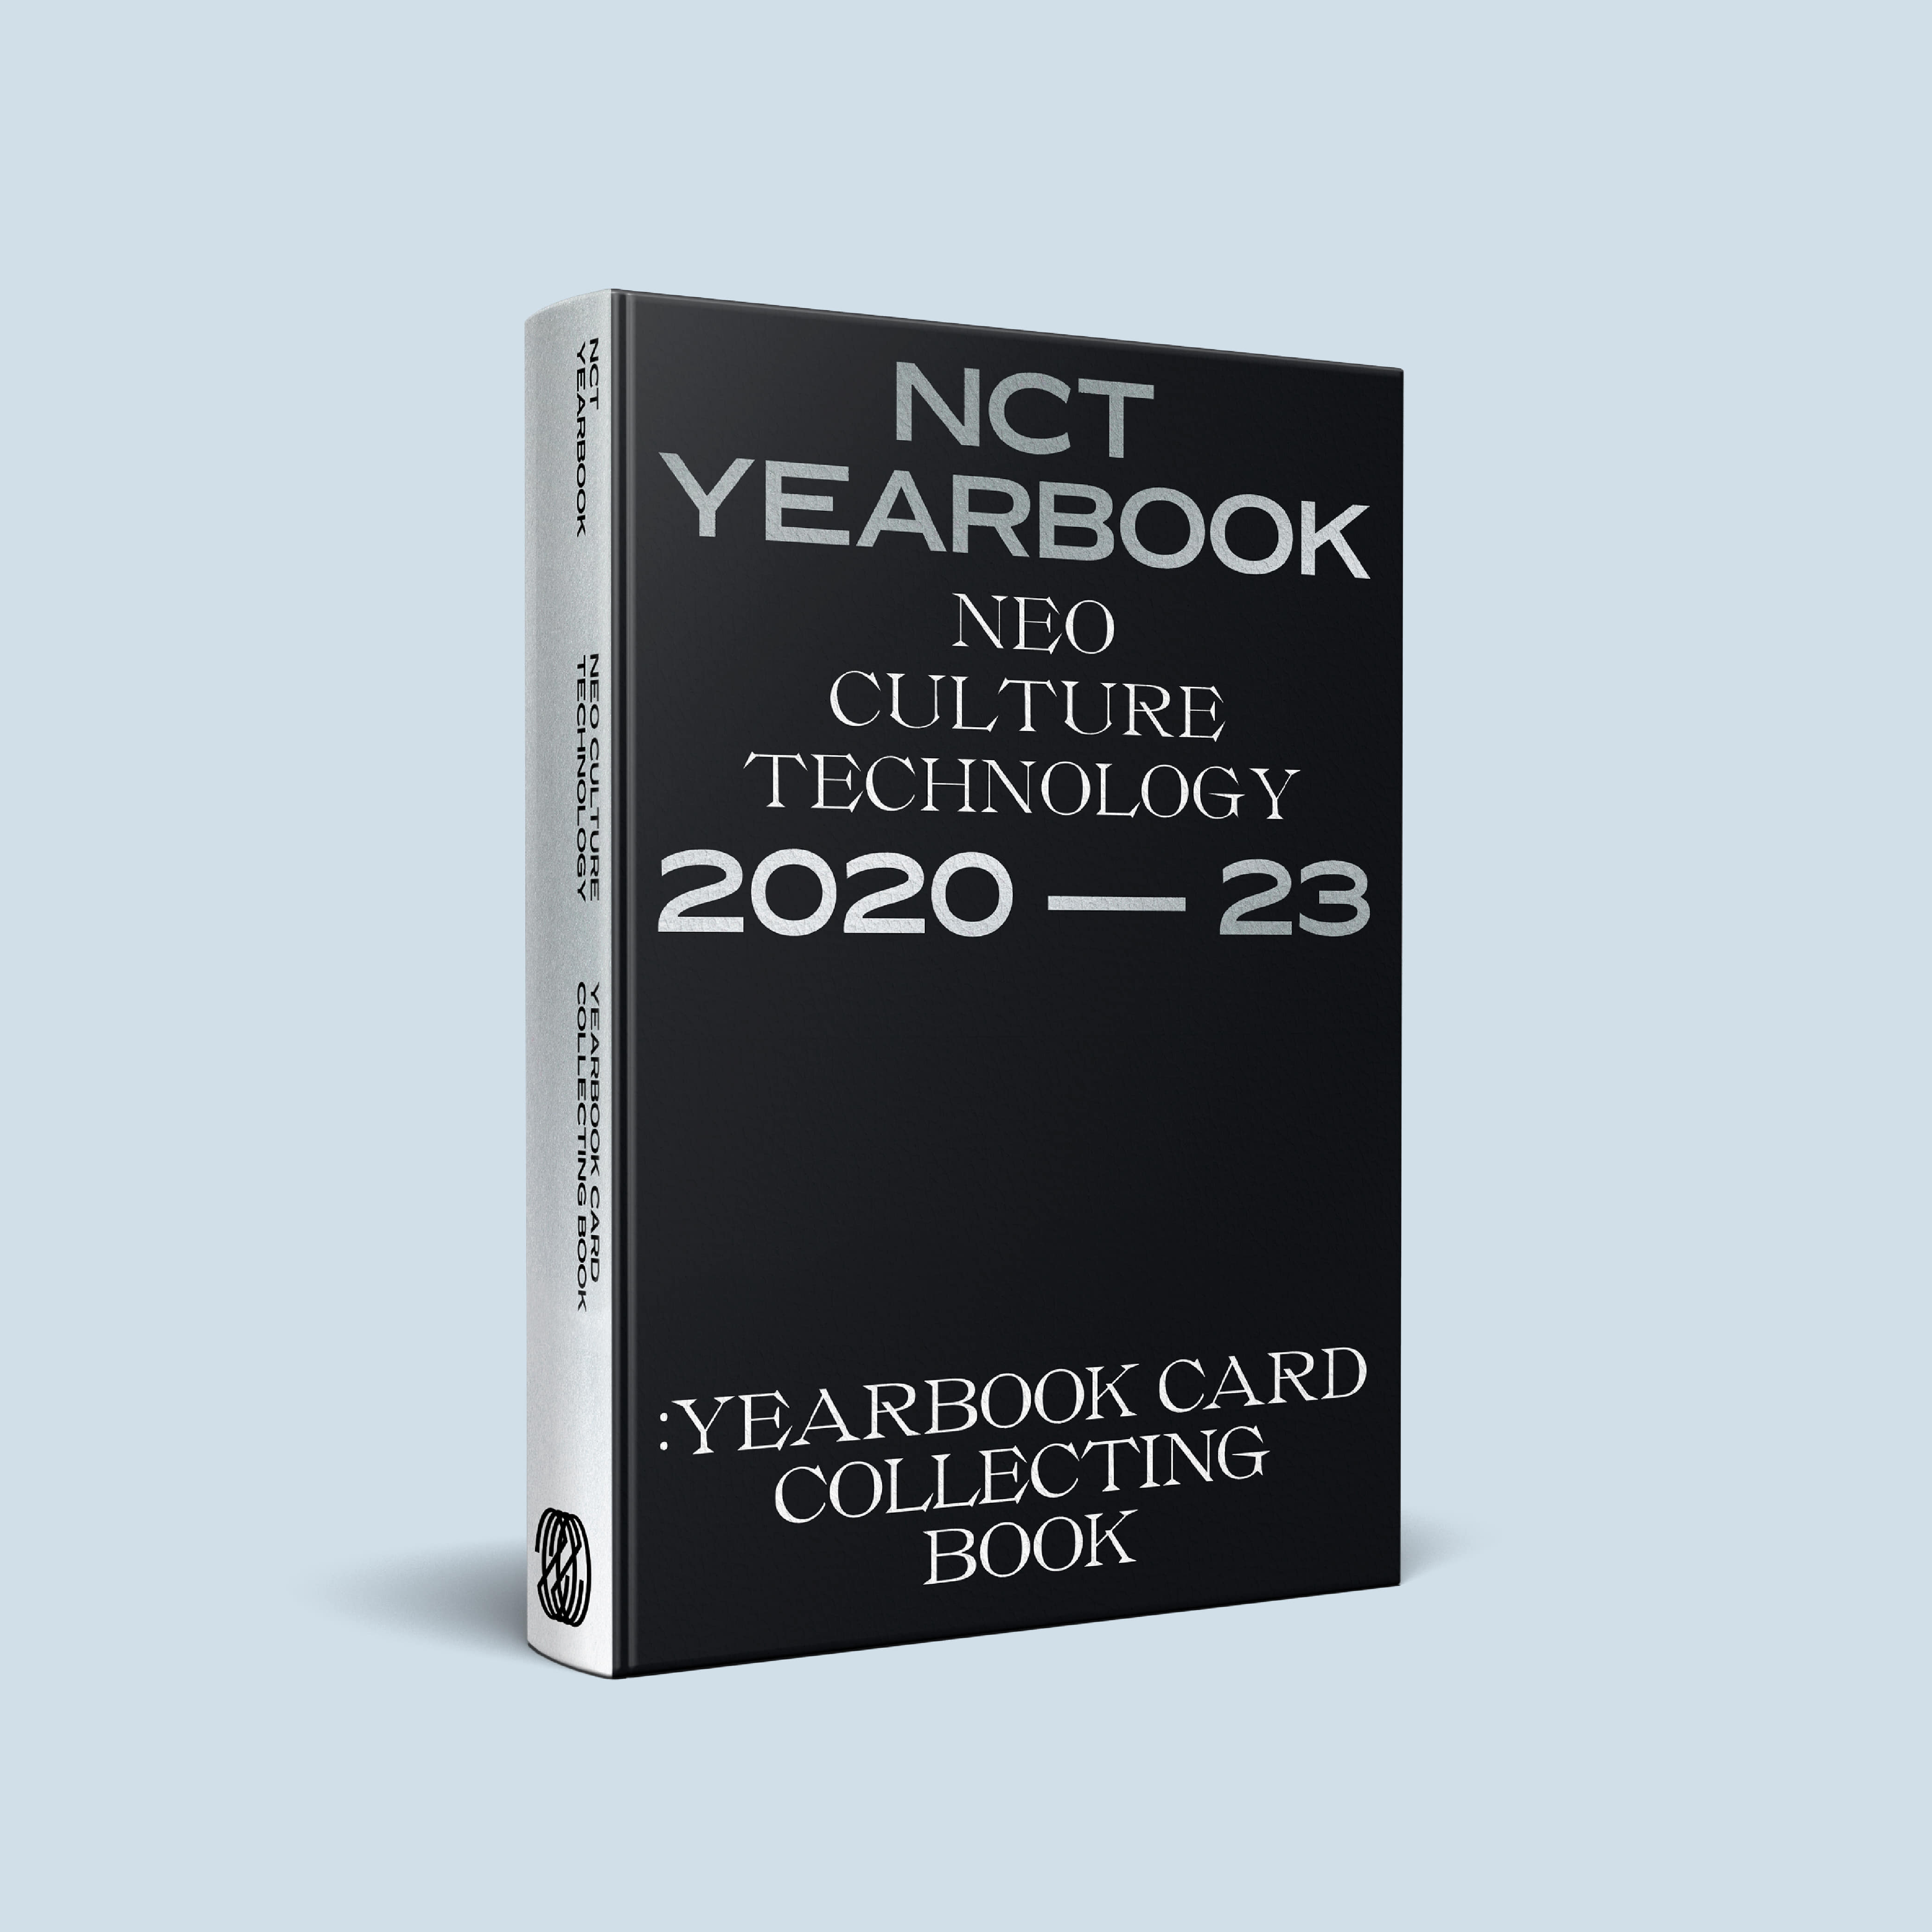 [예약 판매] NCT YEARBOOK - Card Collecting Book케이팝스토어(kpop store)